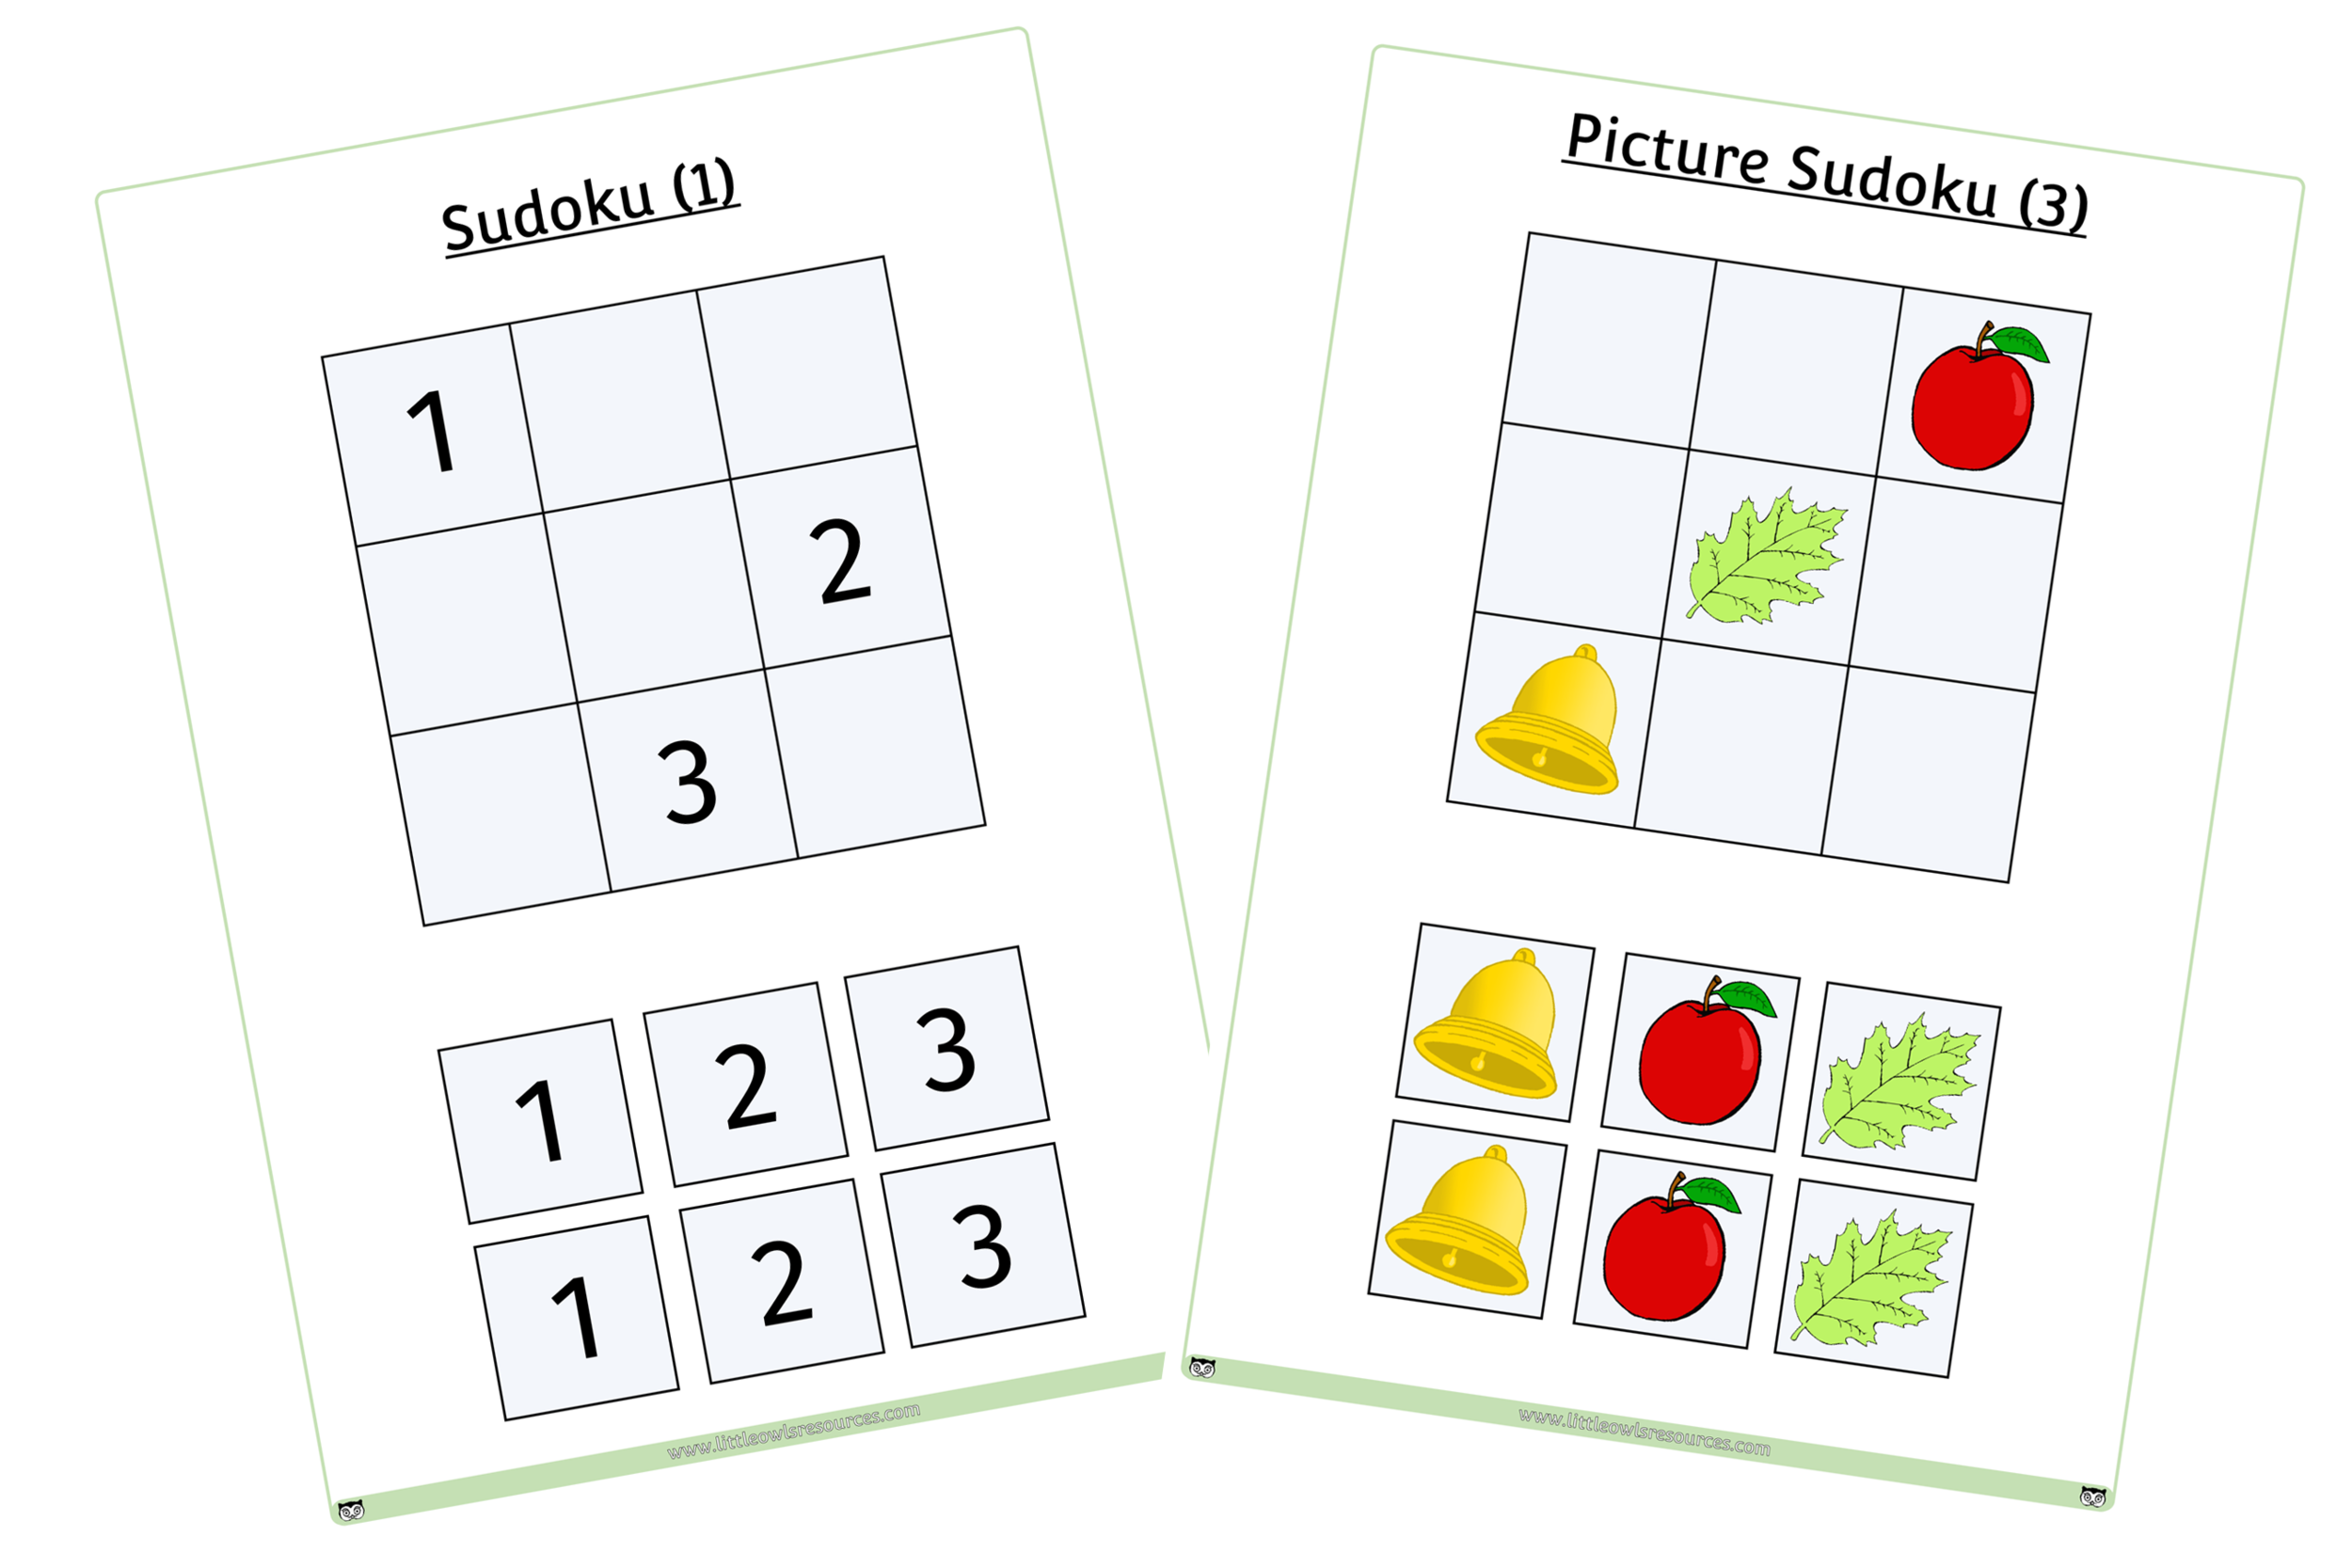 Basic Sudoku puzzles - numbers or pictures - problem solving challenge